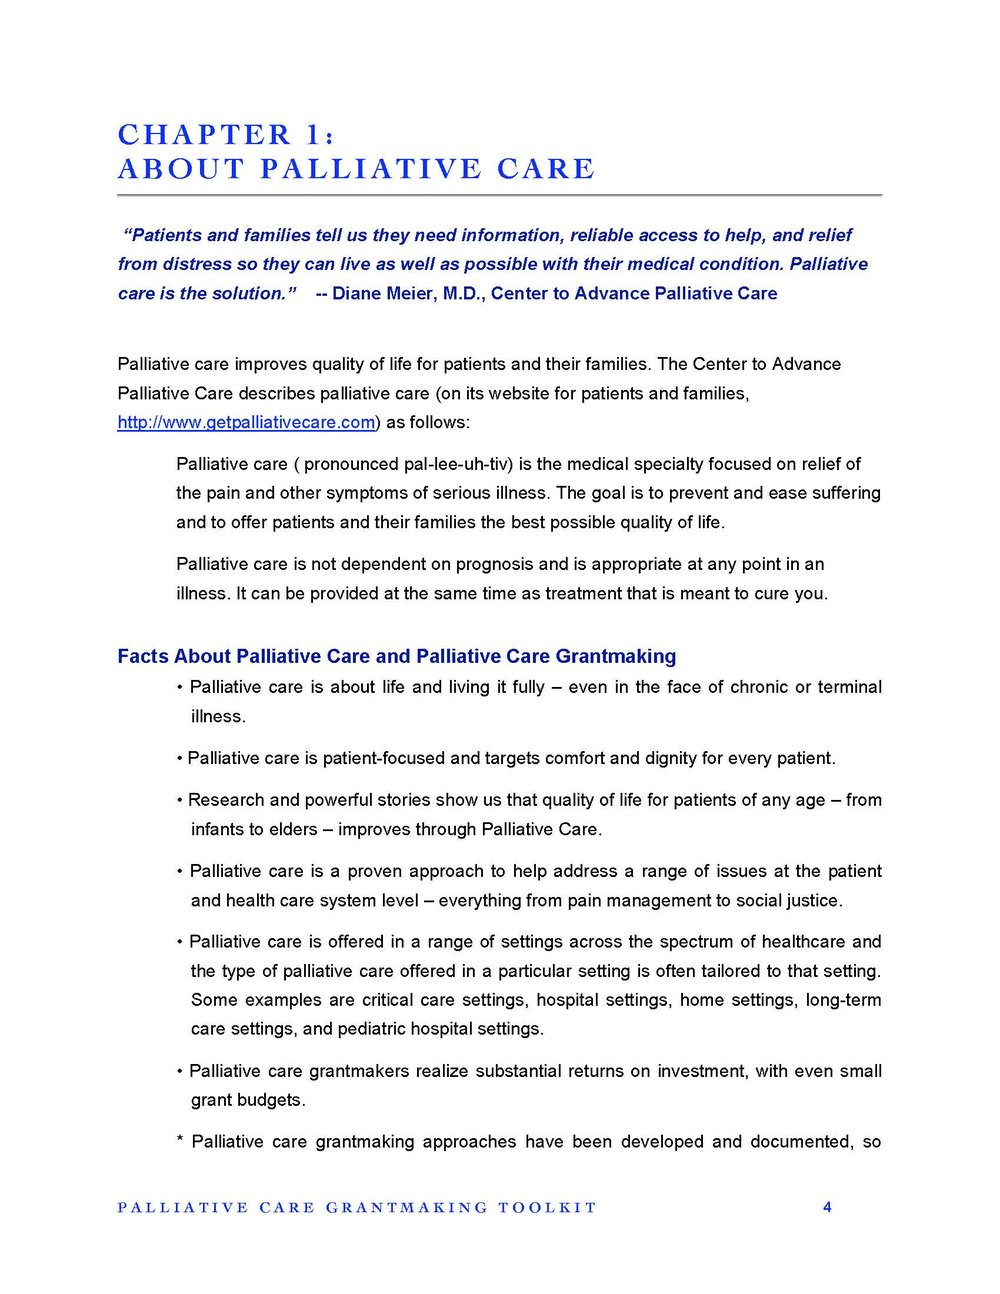 Palliative Care Grantmaking Toolkit_Page_05.jpg